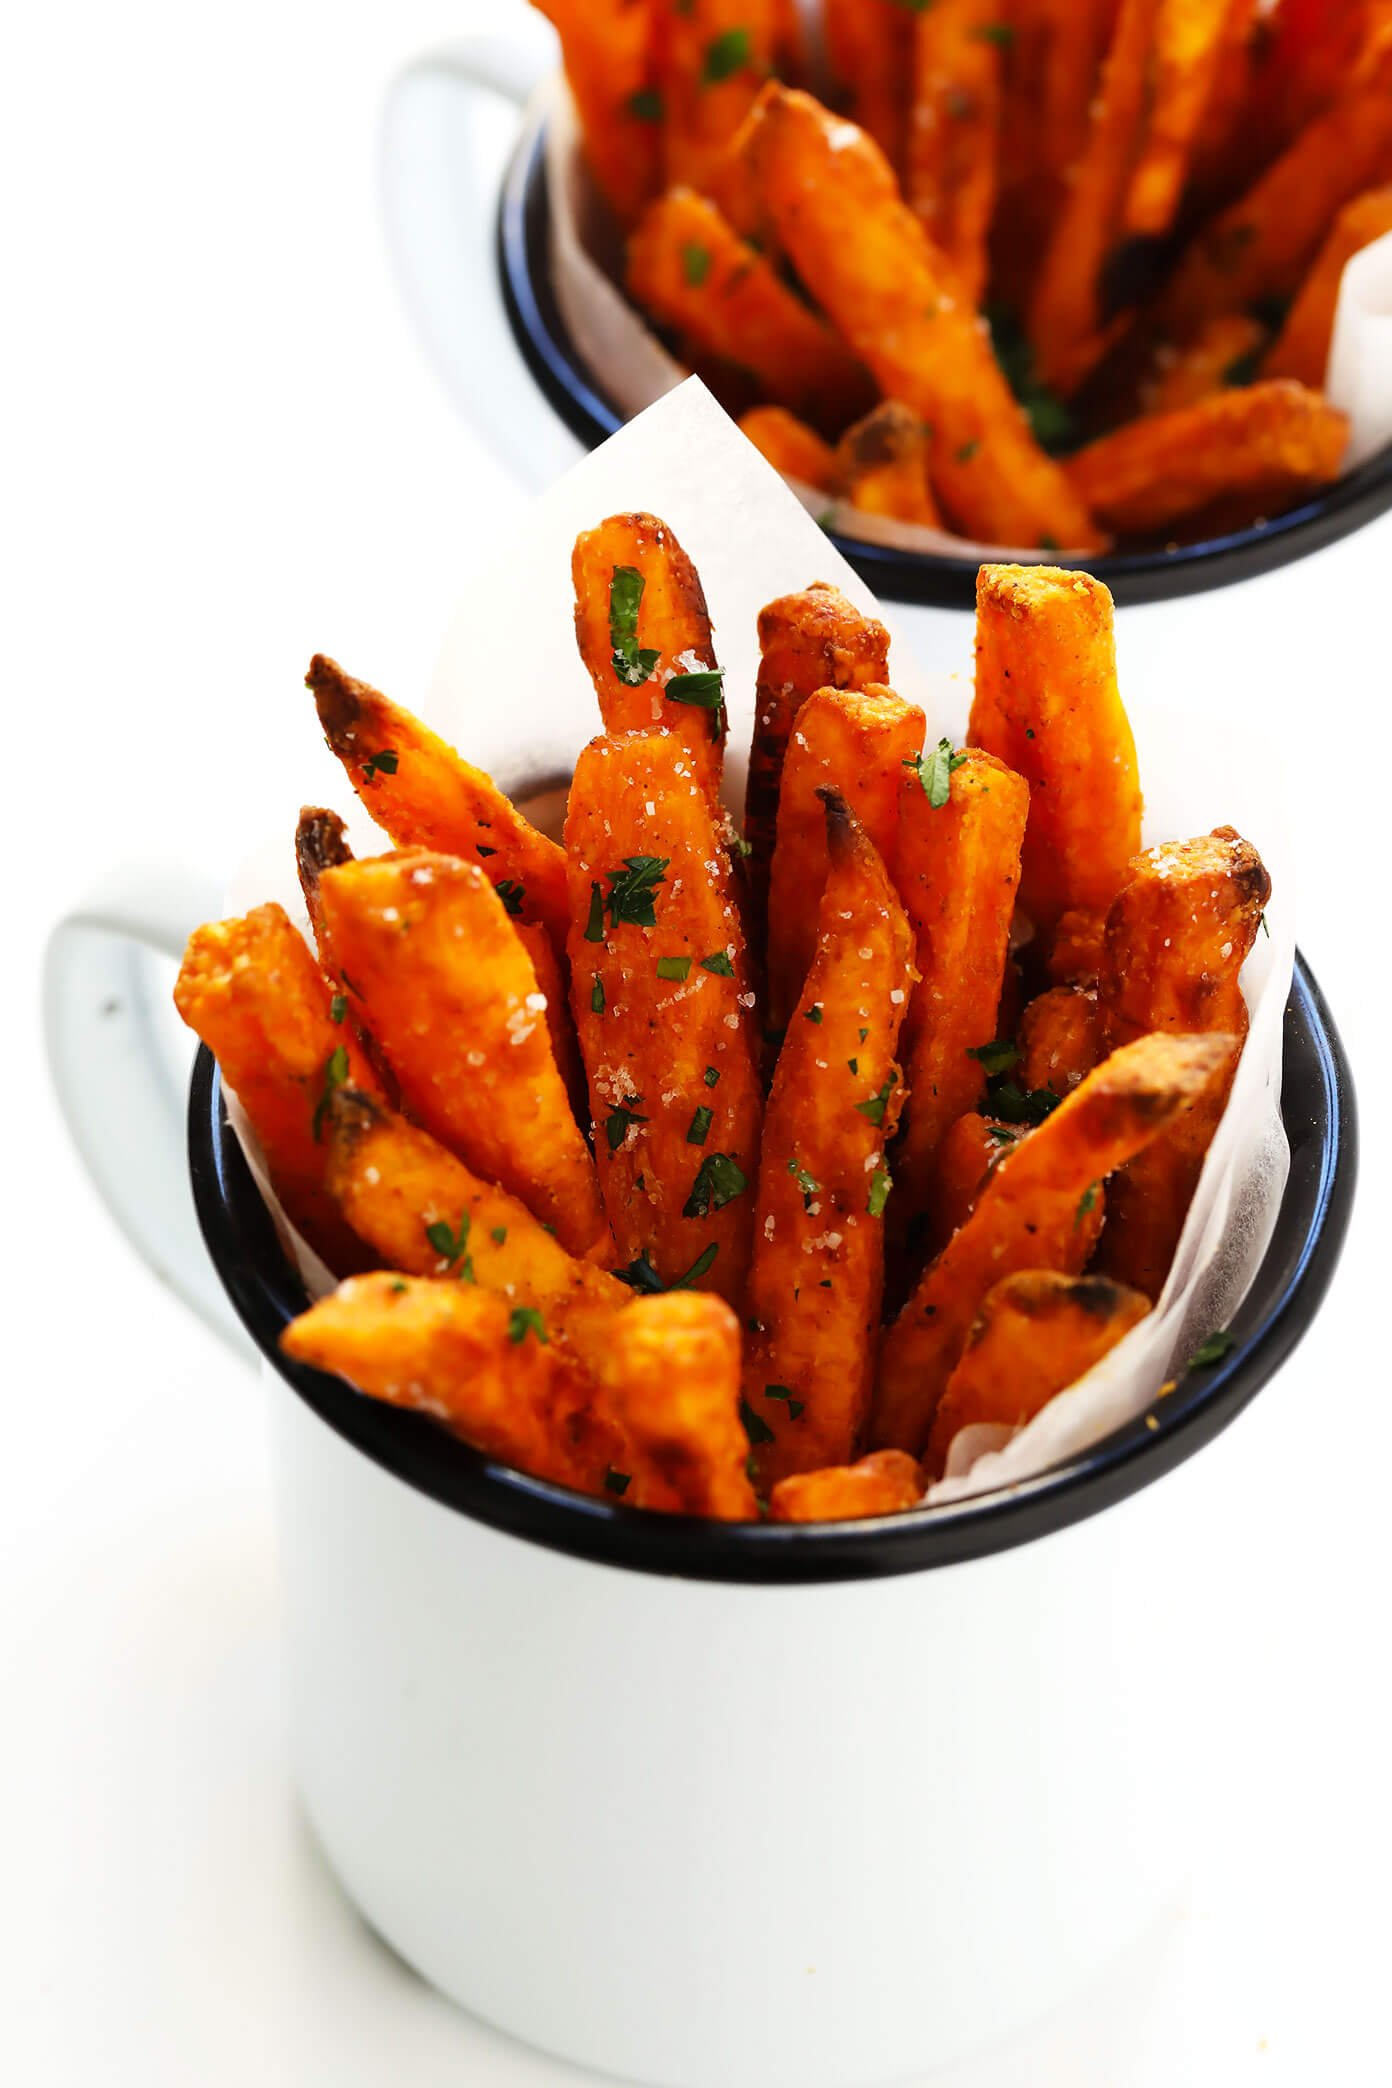 What can i make with sweet potato fries near me serve